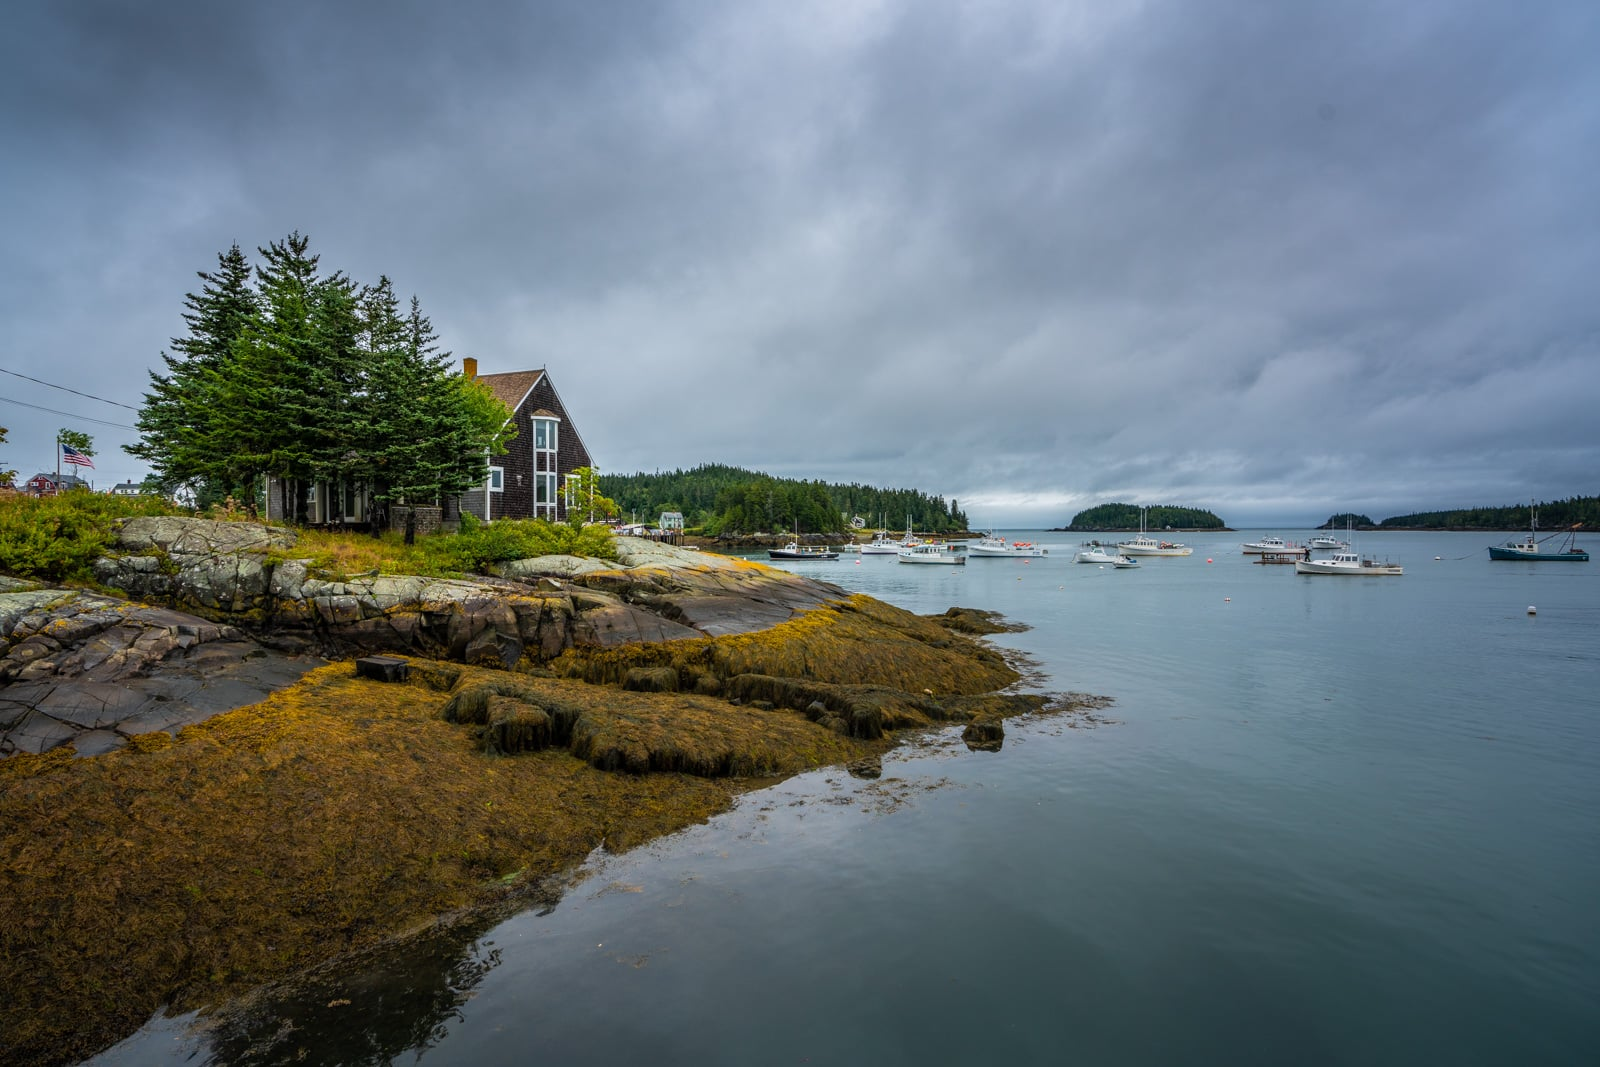 Cloudy days in town of Cutler, Maine